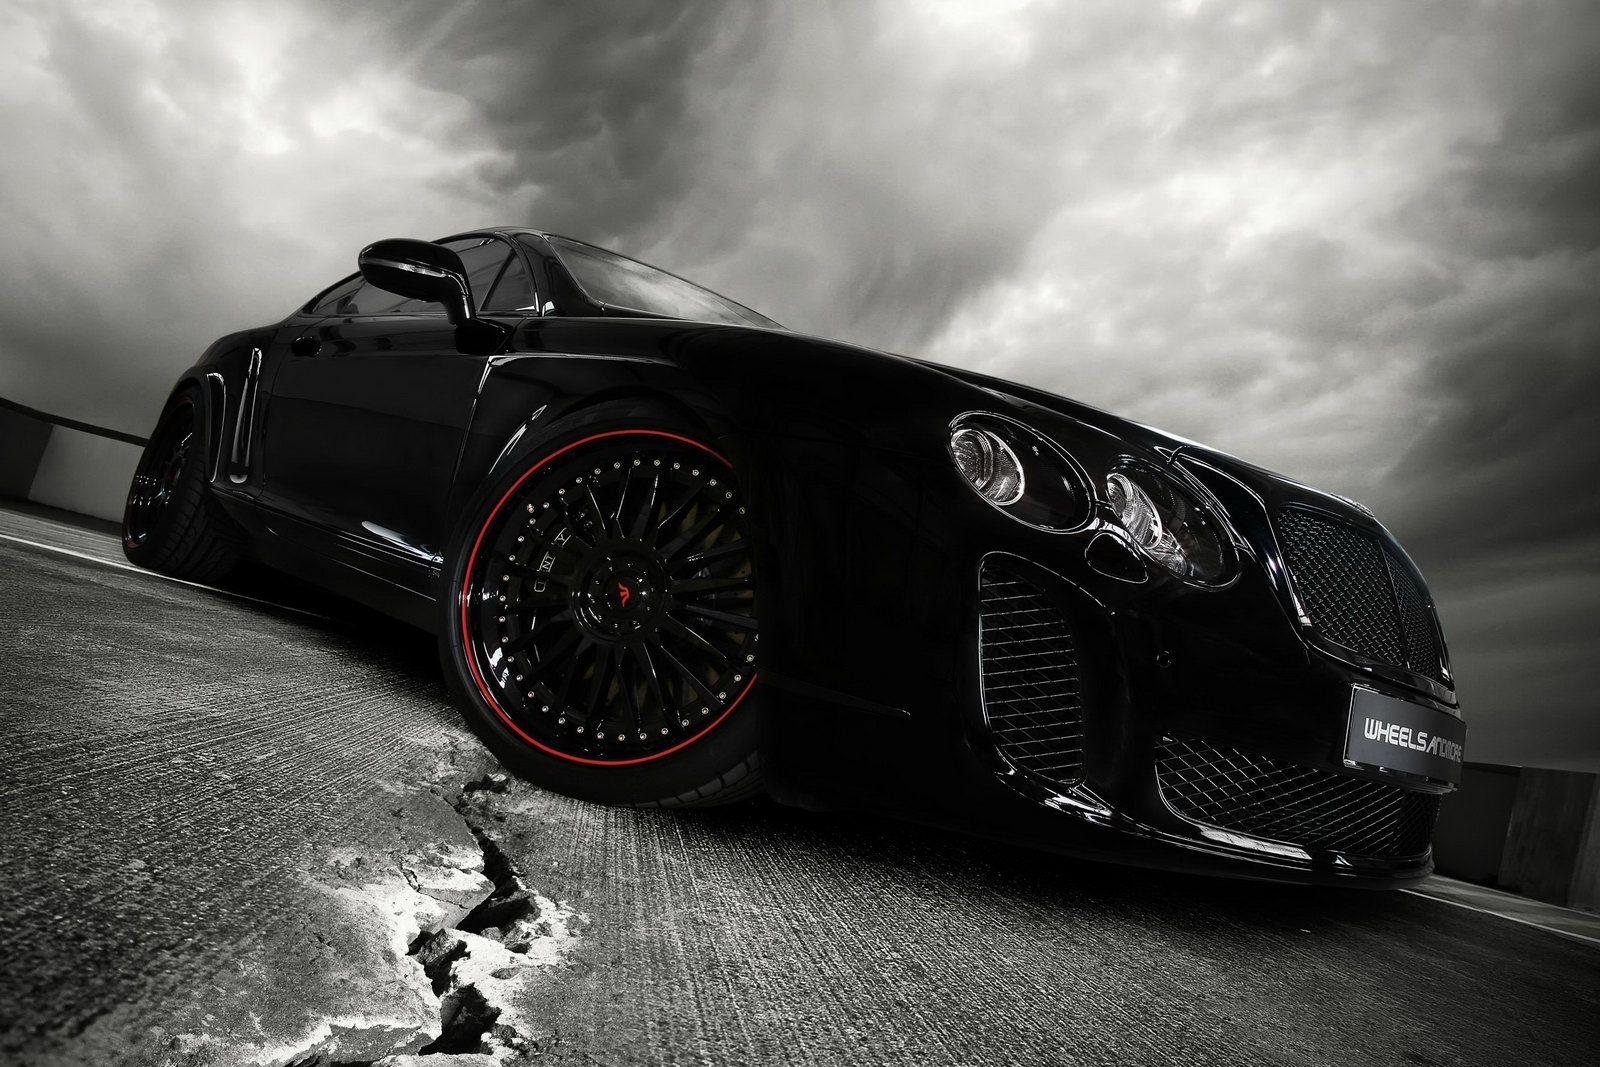 Bentley Continental Gt Wallpaper Modification #6928055